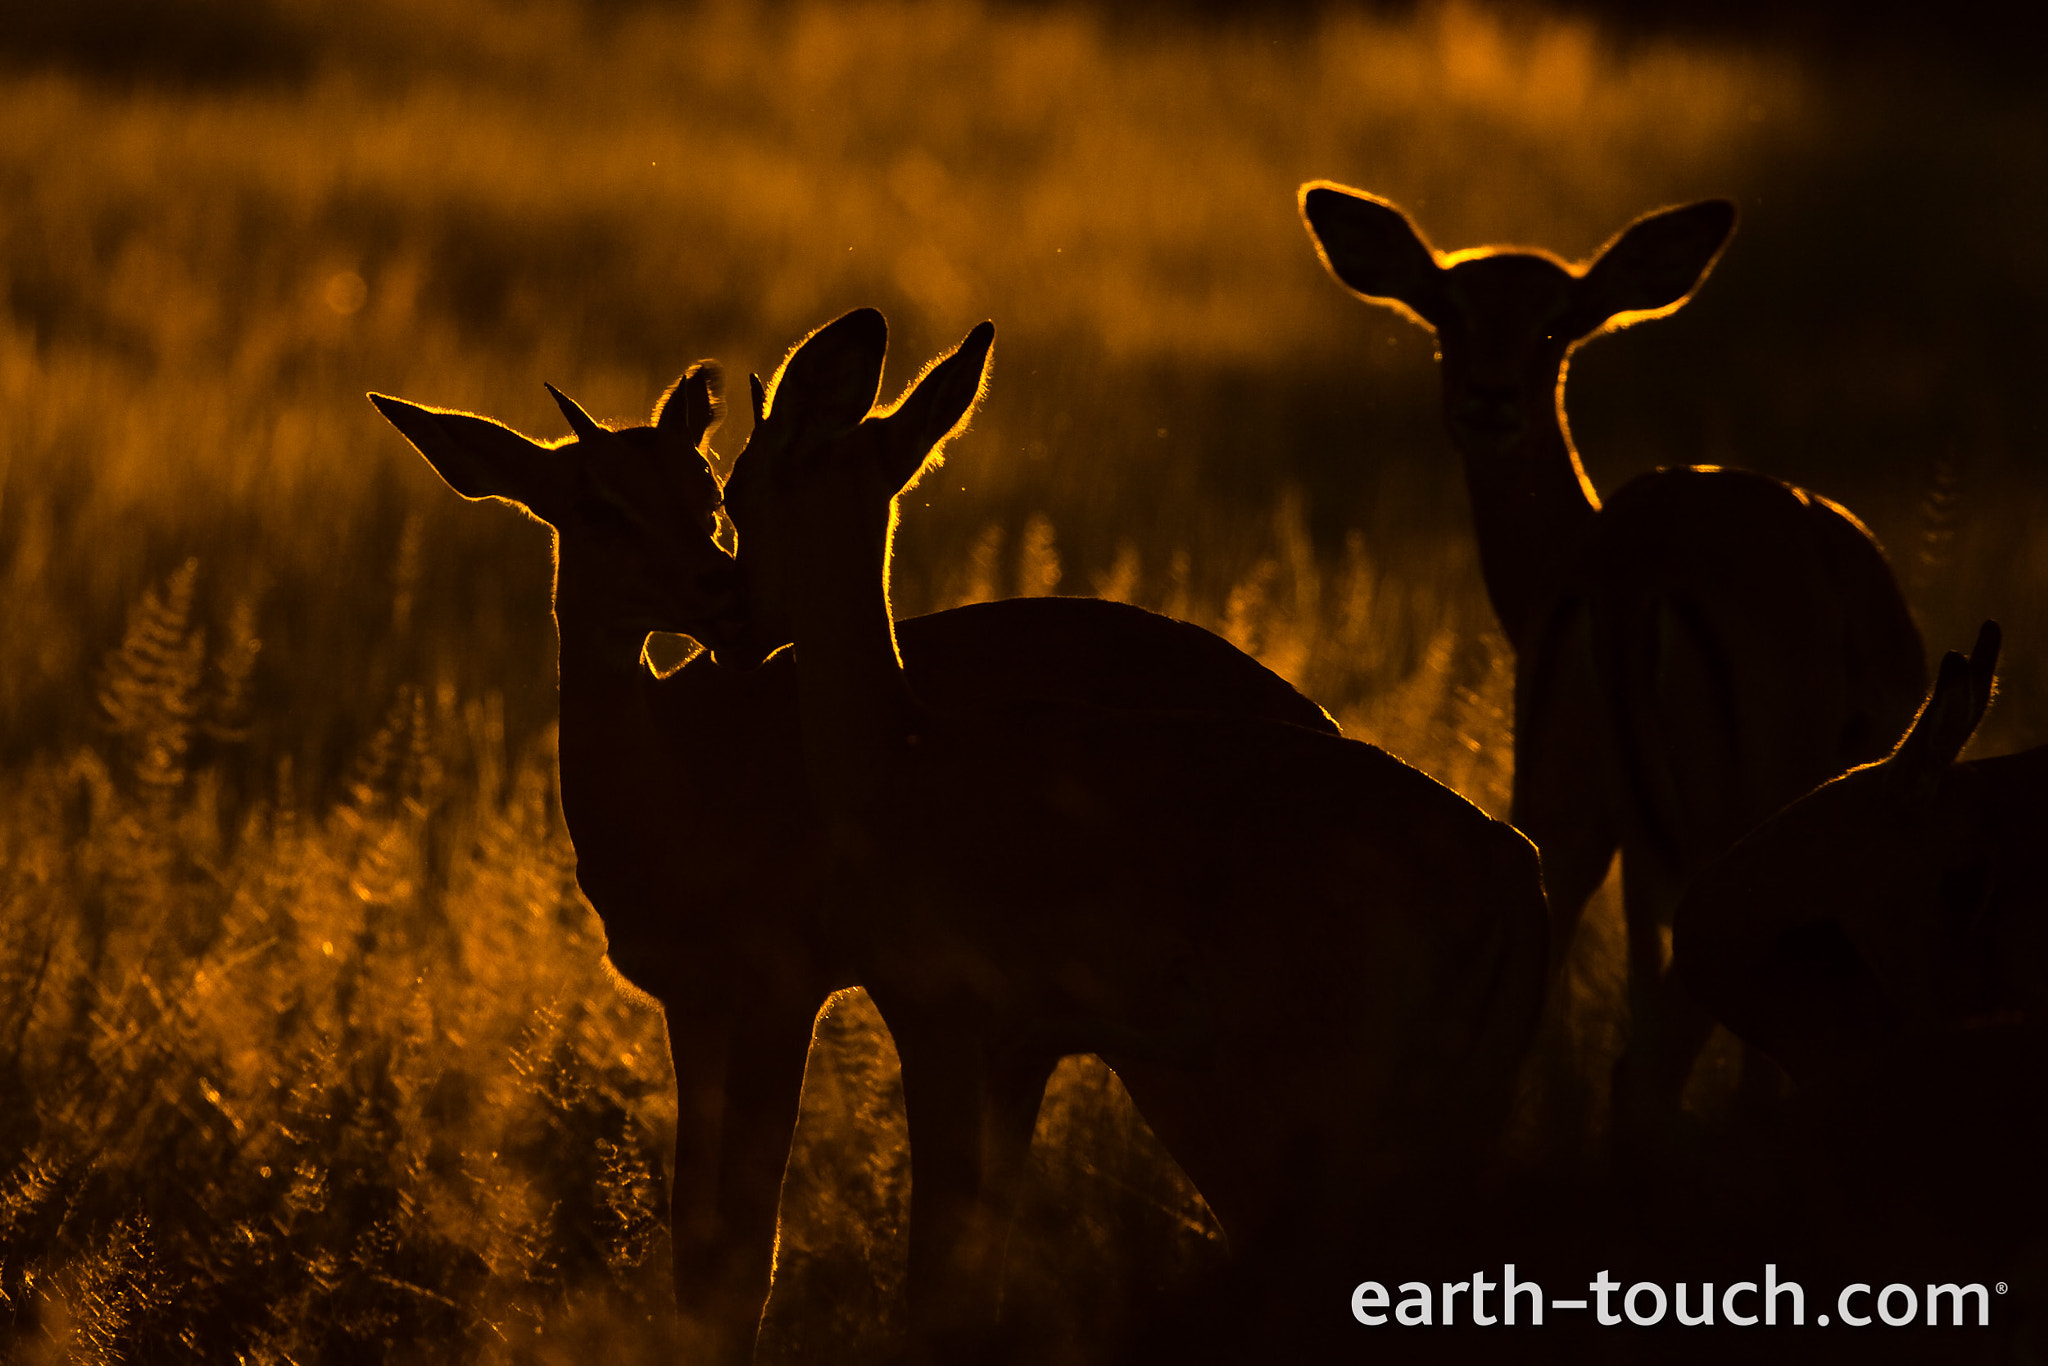 Photograph Illuminated Impala by Earth Touch on 500px